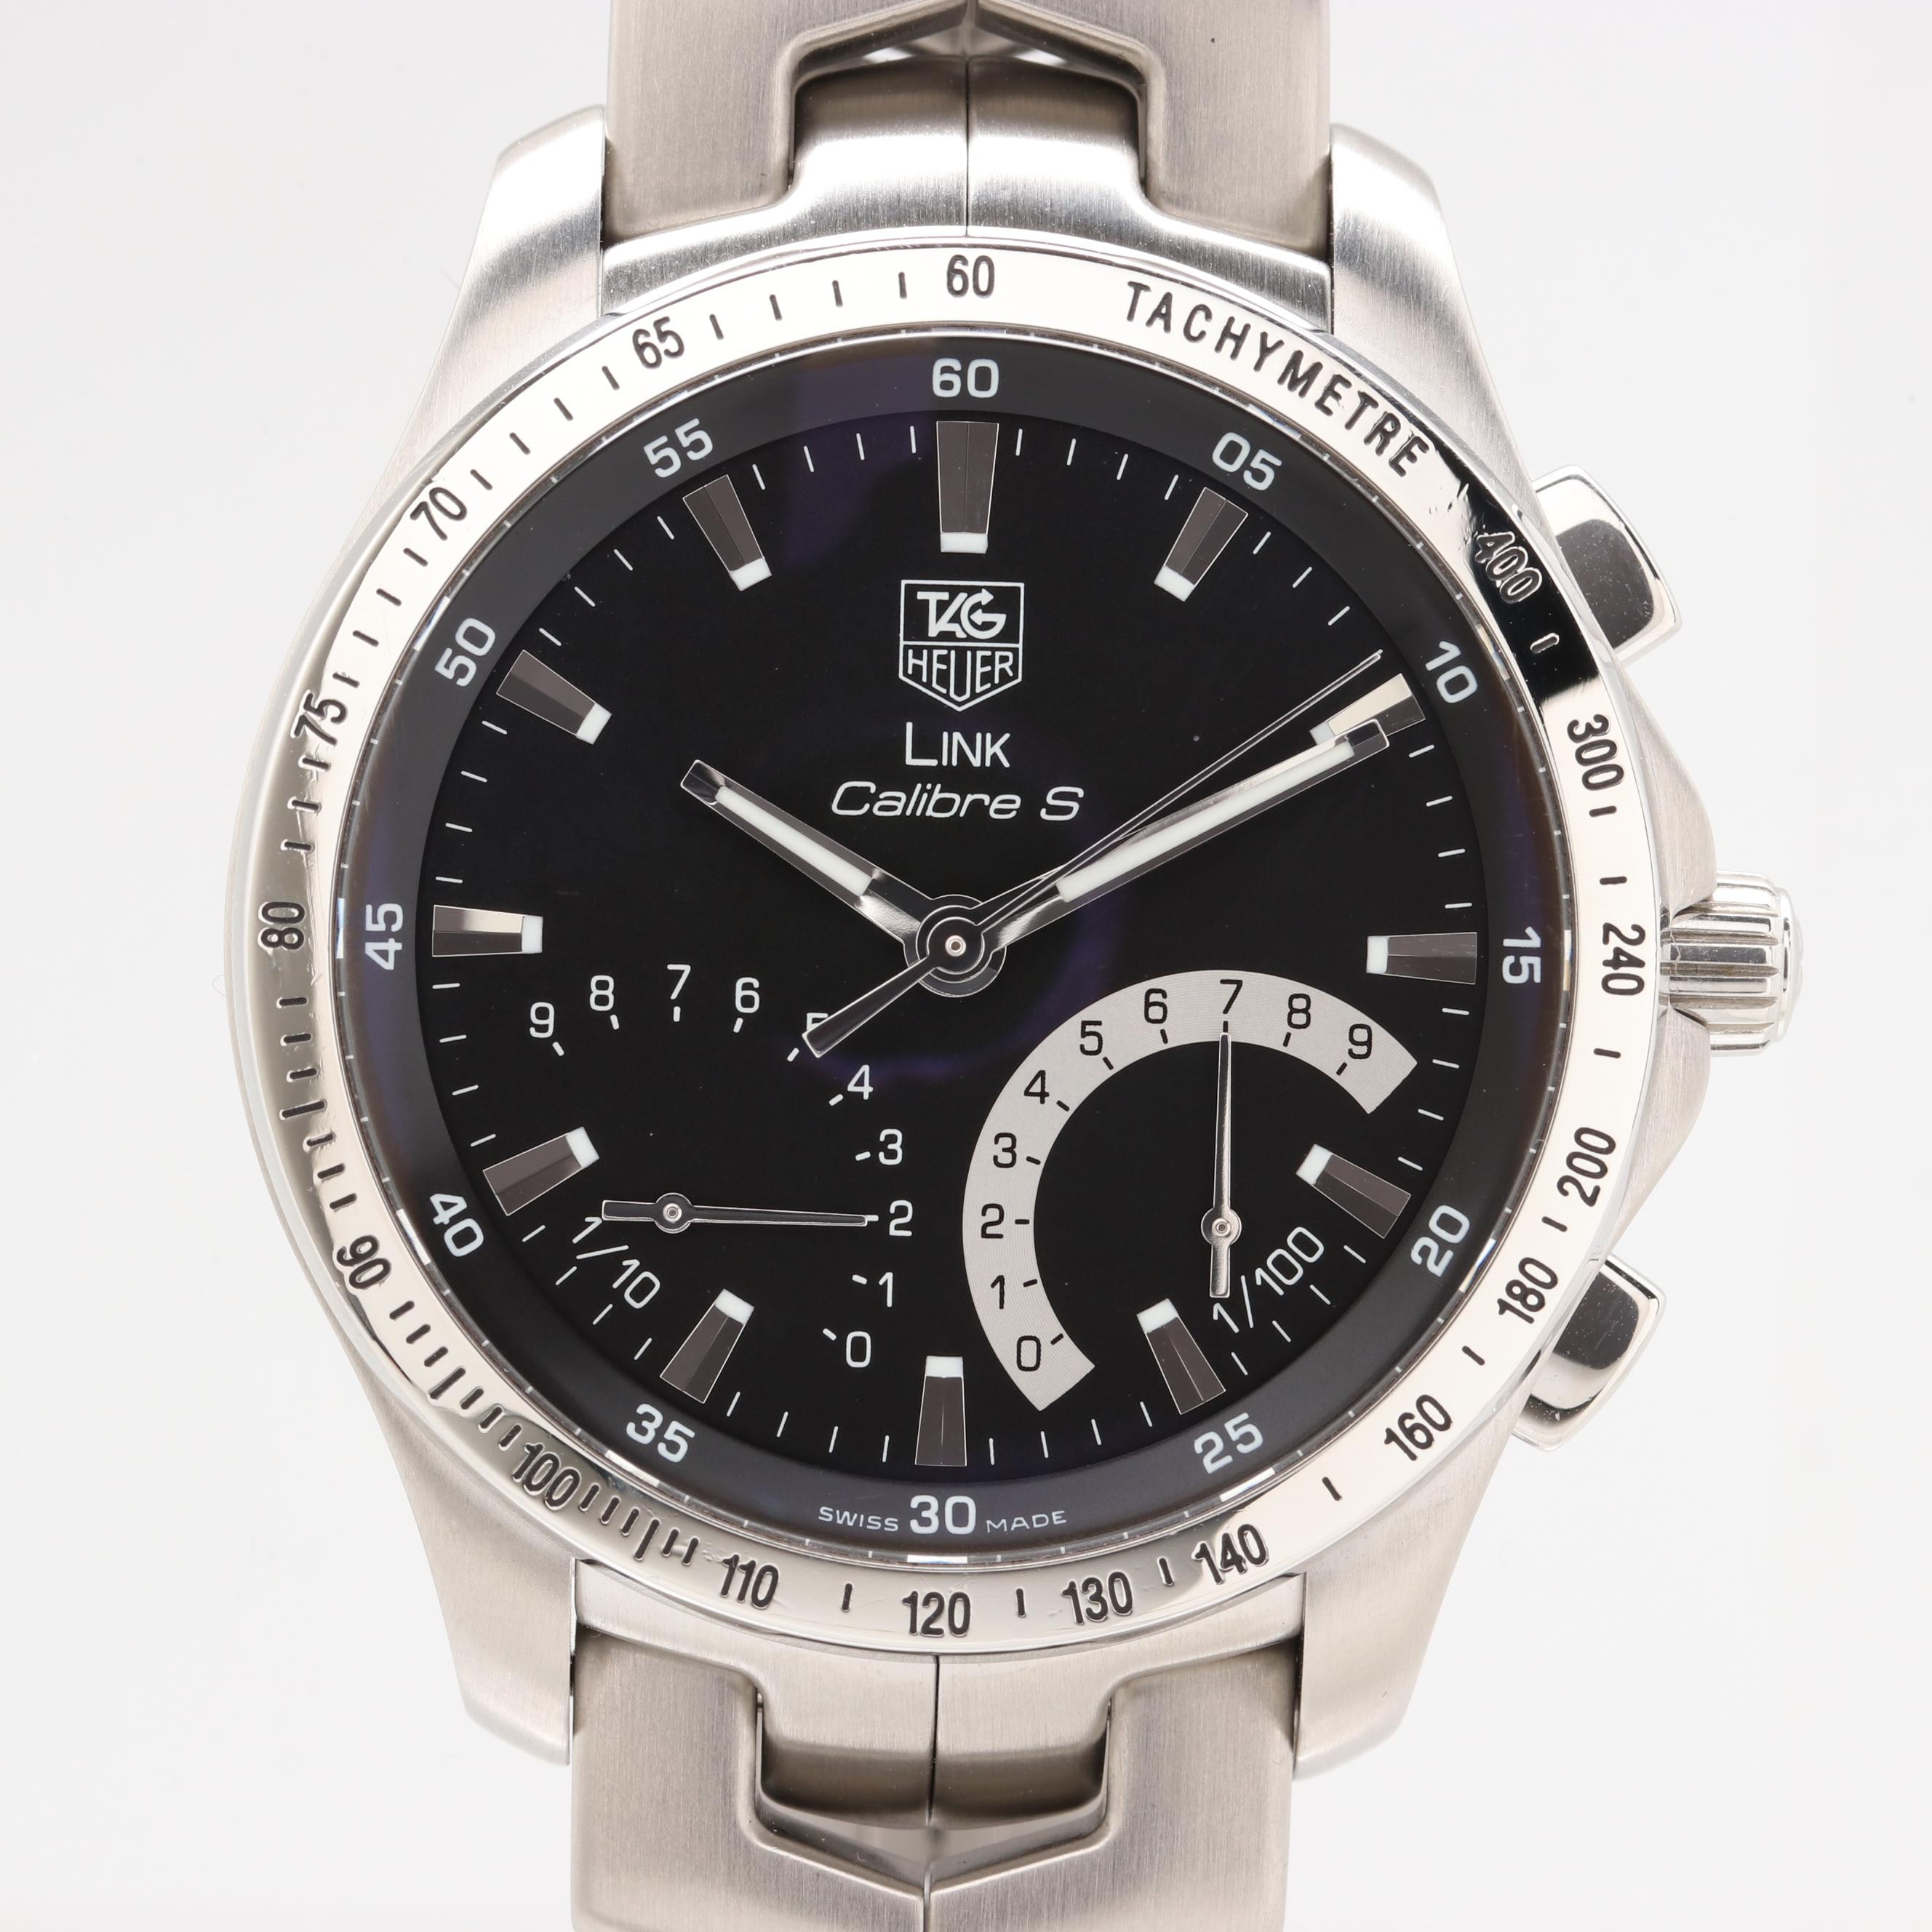 TAG Heuer Link Calibre S Quartz Chronograph Wristwatch